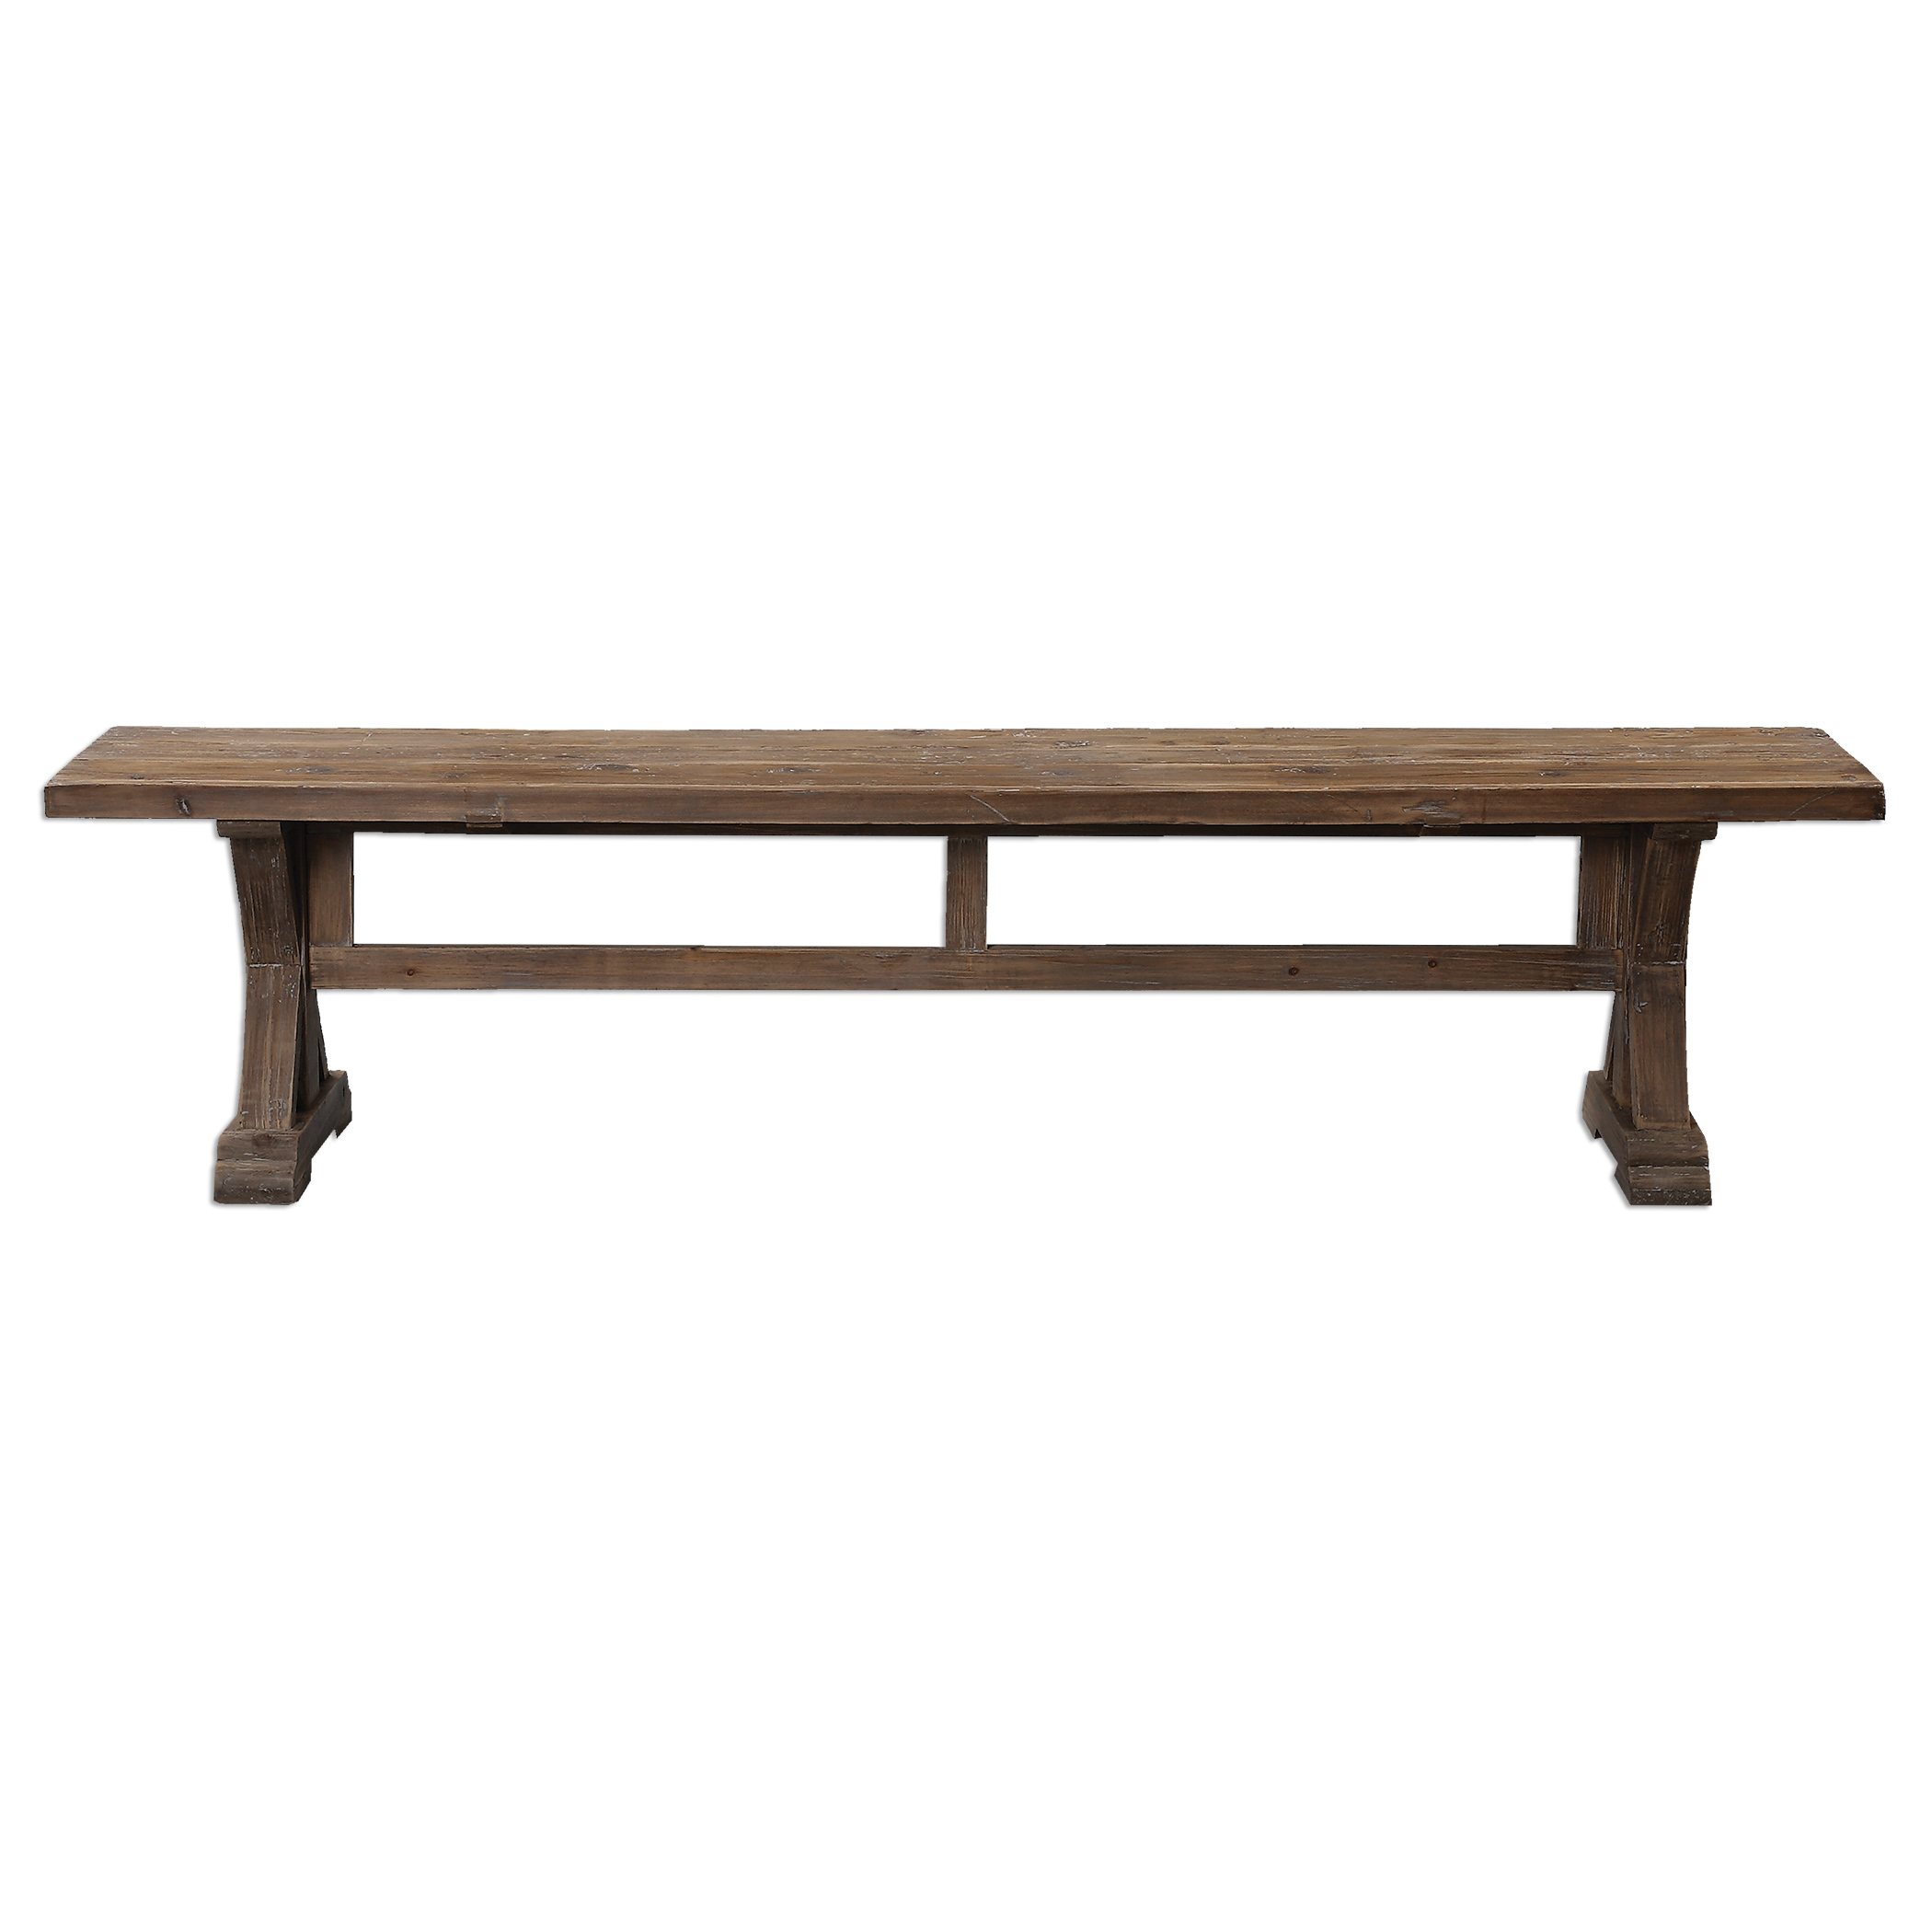 Accent Furniture - Benches Stratford Salvaged Wood Bench by Uttermost at O'Dunk & O'Bright Furniture